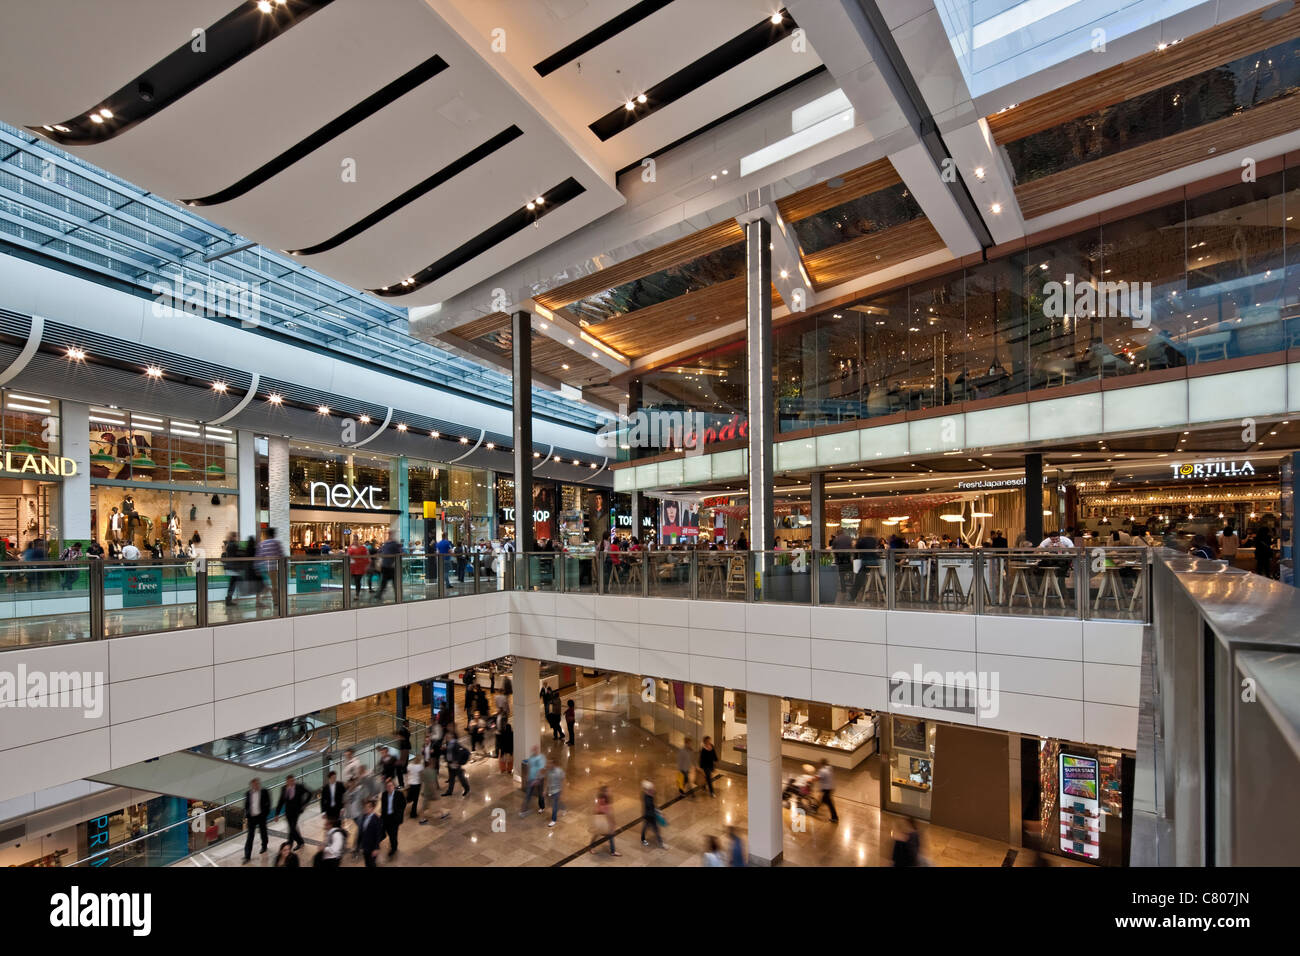 Westfield Shopping Centre - Stratford. Stock Photo